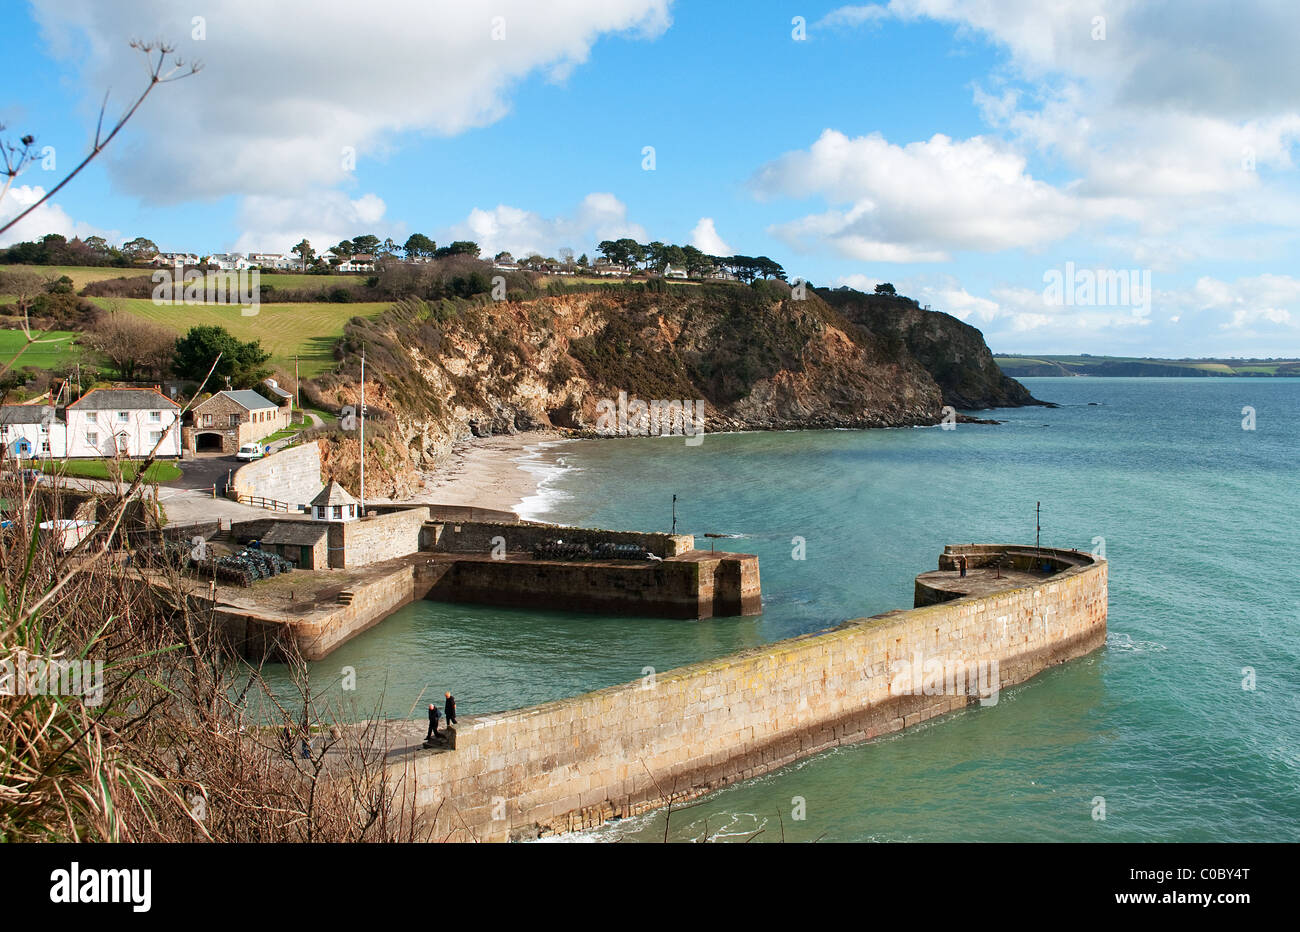 The entrance the georgian harbour at Charlestown in Cornwall, UK - Stock Image